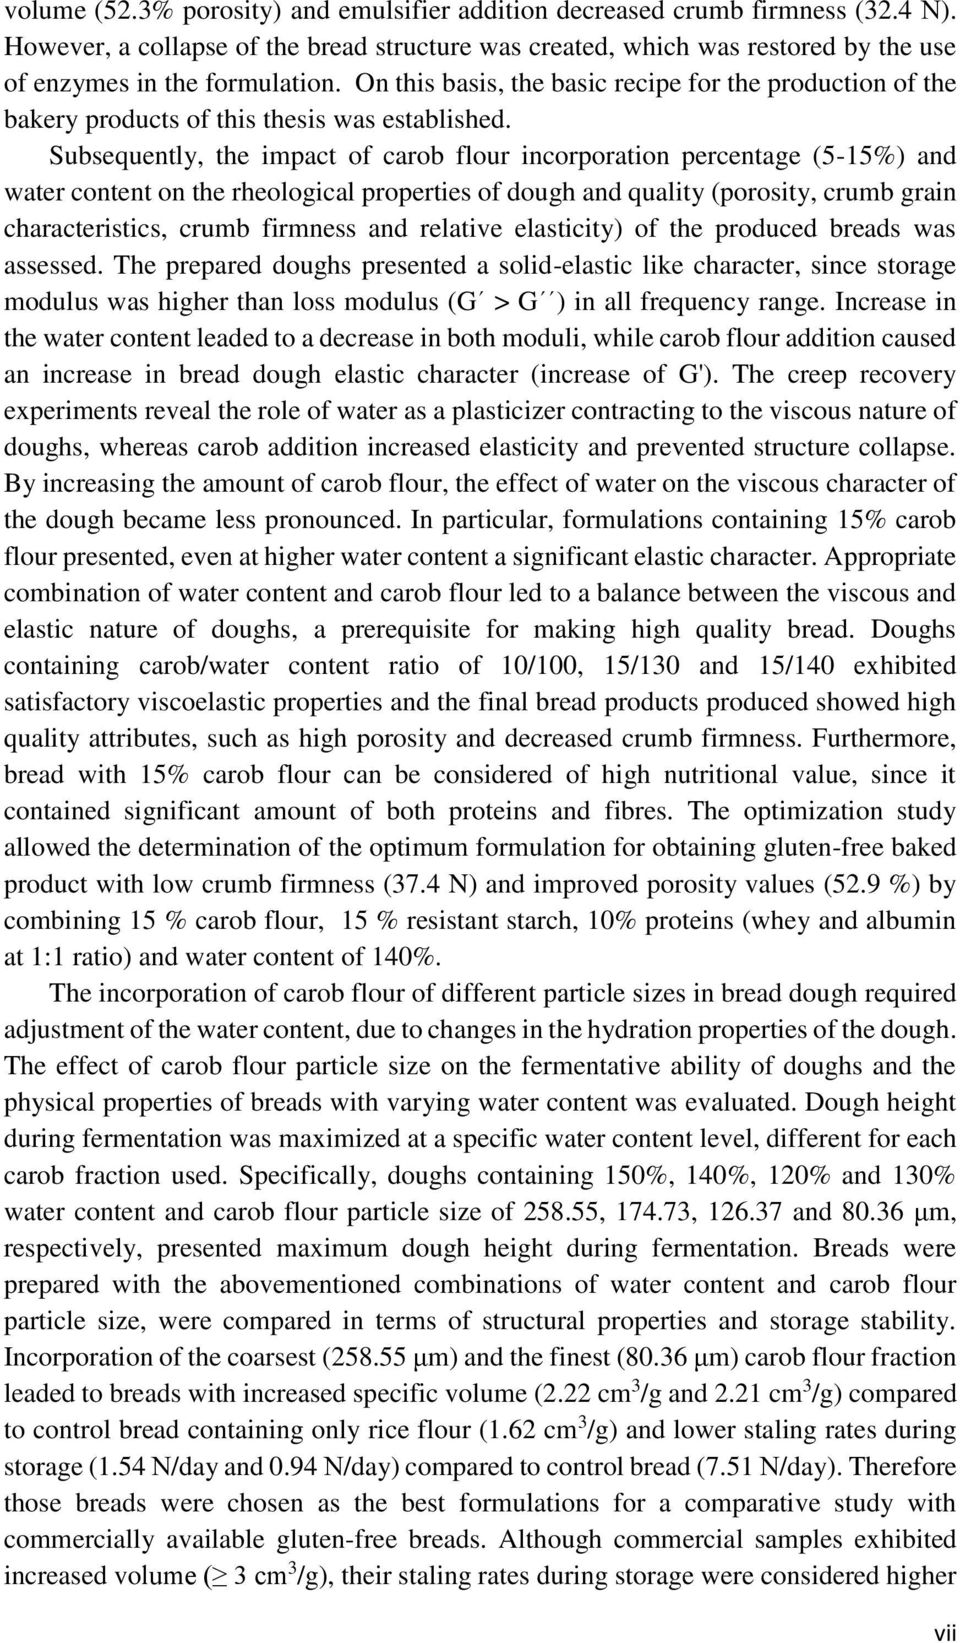 Subsequently, the impact of carob flour incorporation percentage (5-15%) and water content on the rheological properties of dough and quality (porosity, crumb grain characteristics, crumb firmness